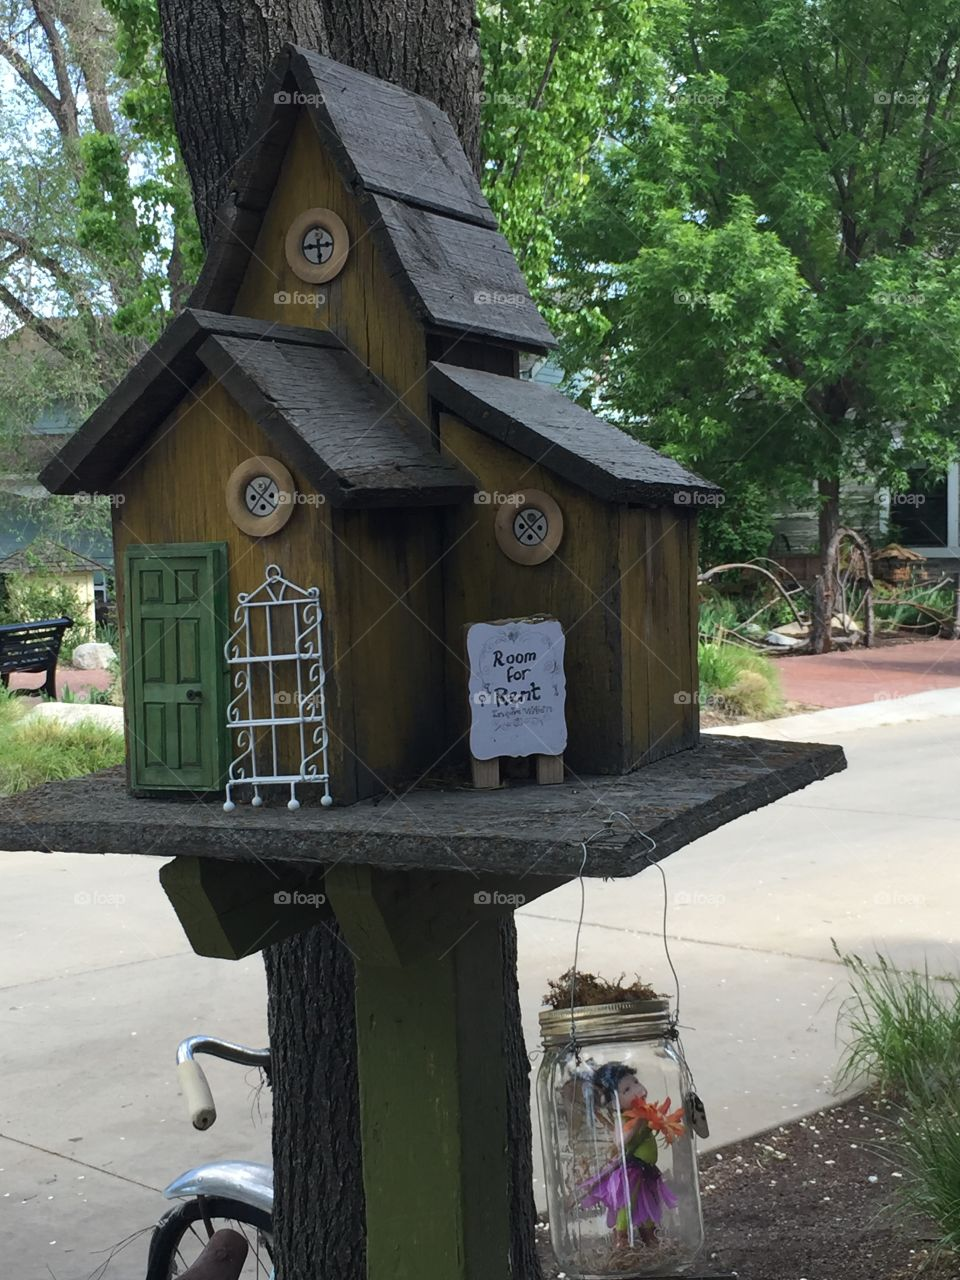 Fairy Quest. Room for Rent! Pixie Home. Fairy Homes & Gardens. Pixie Hollow and Gardens. Gardner Village, in West Jordan, Utah. @chelseamerkleyphotos - Copyright © CM Photography. May 2019.